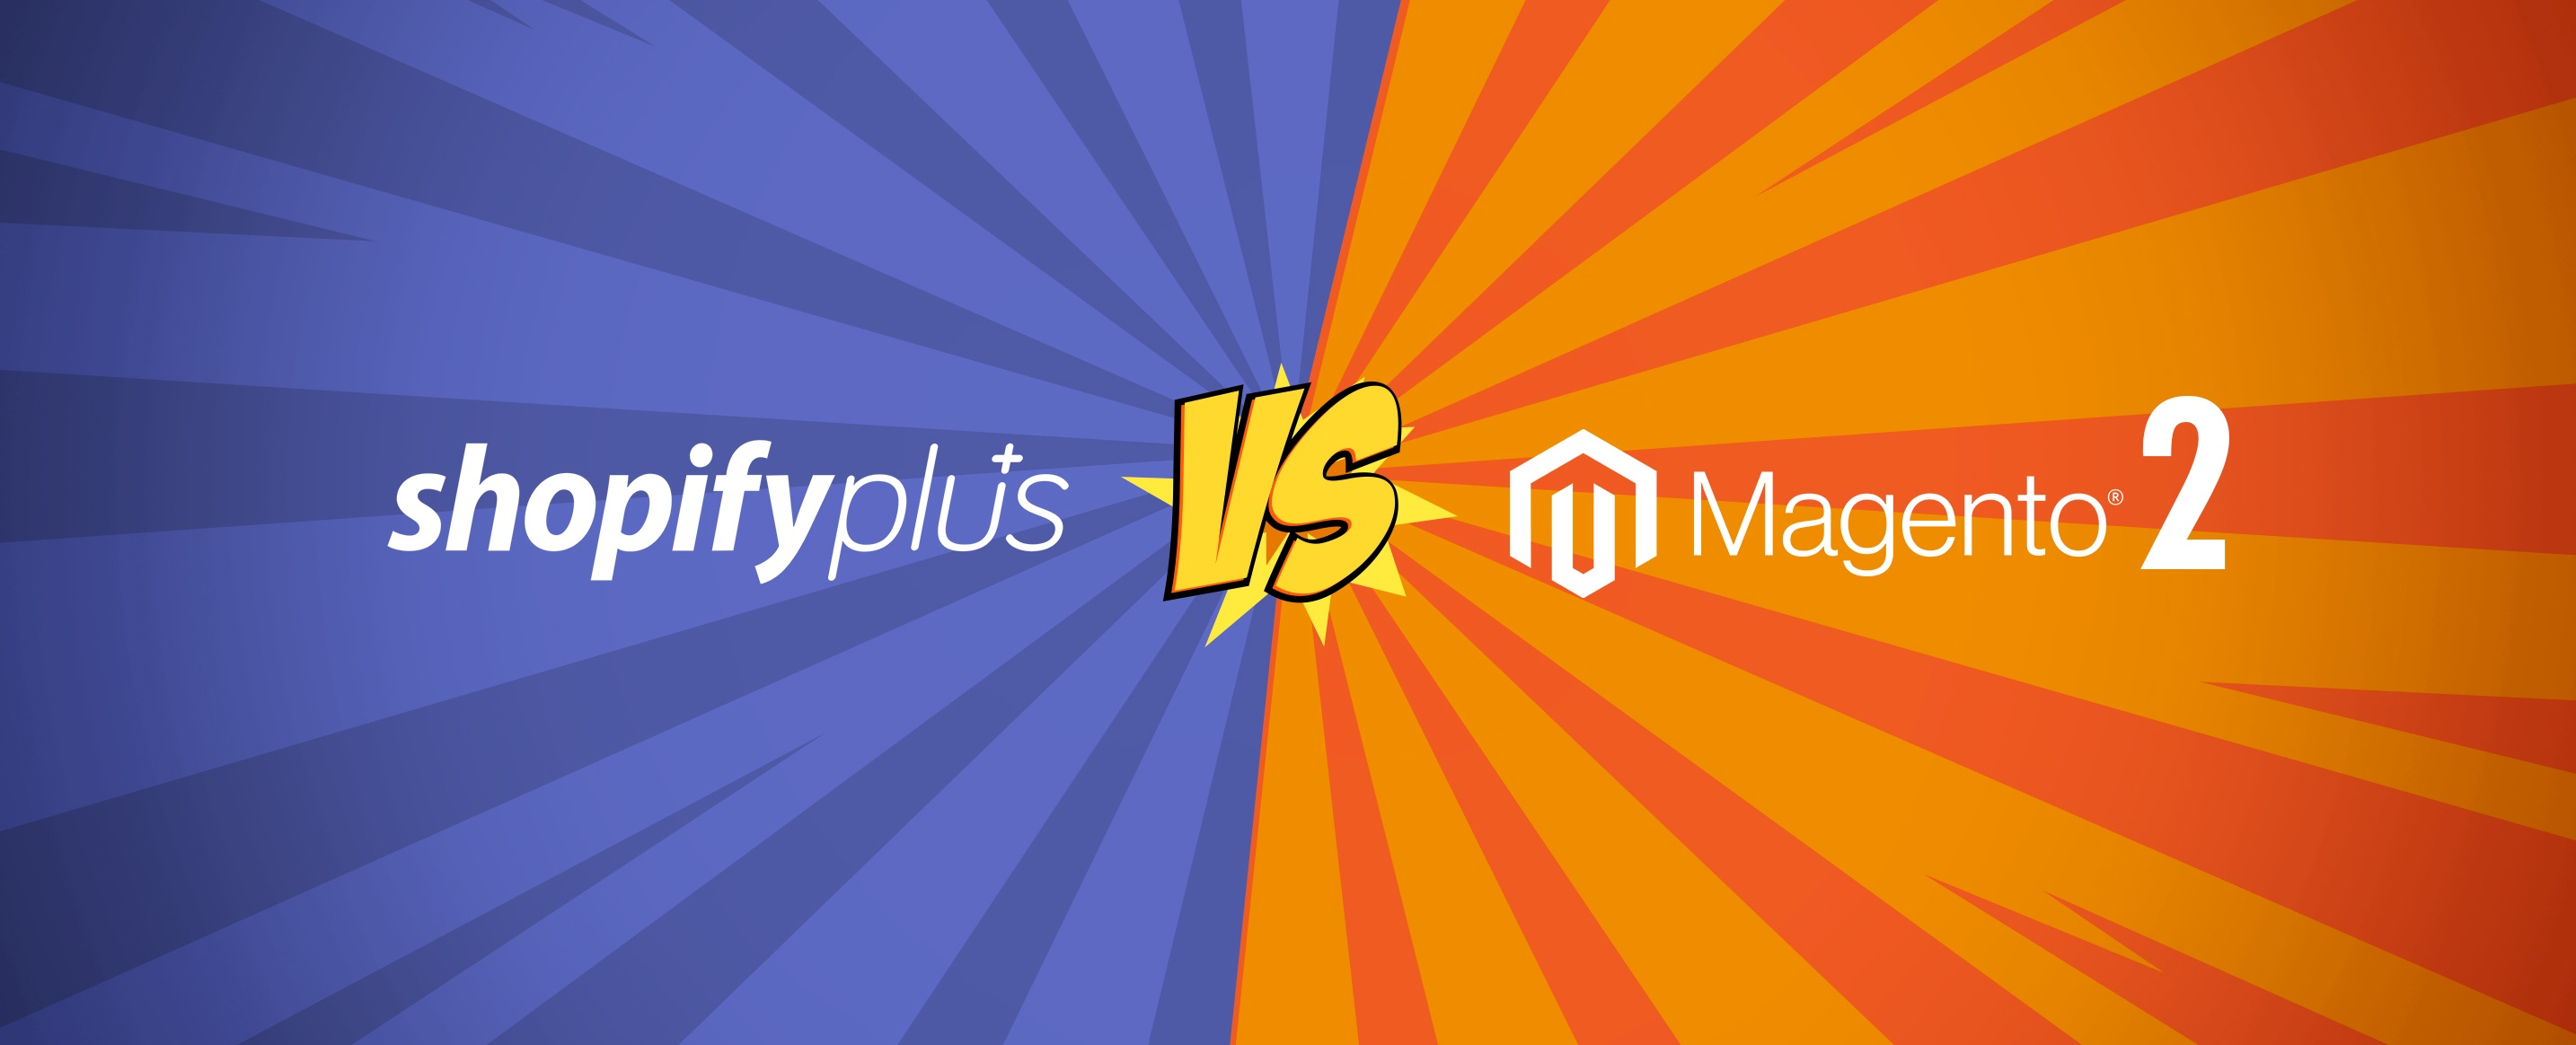 Magento-2-Commerce-vs-Shopify-Plus